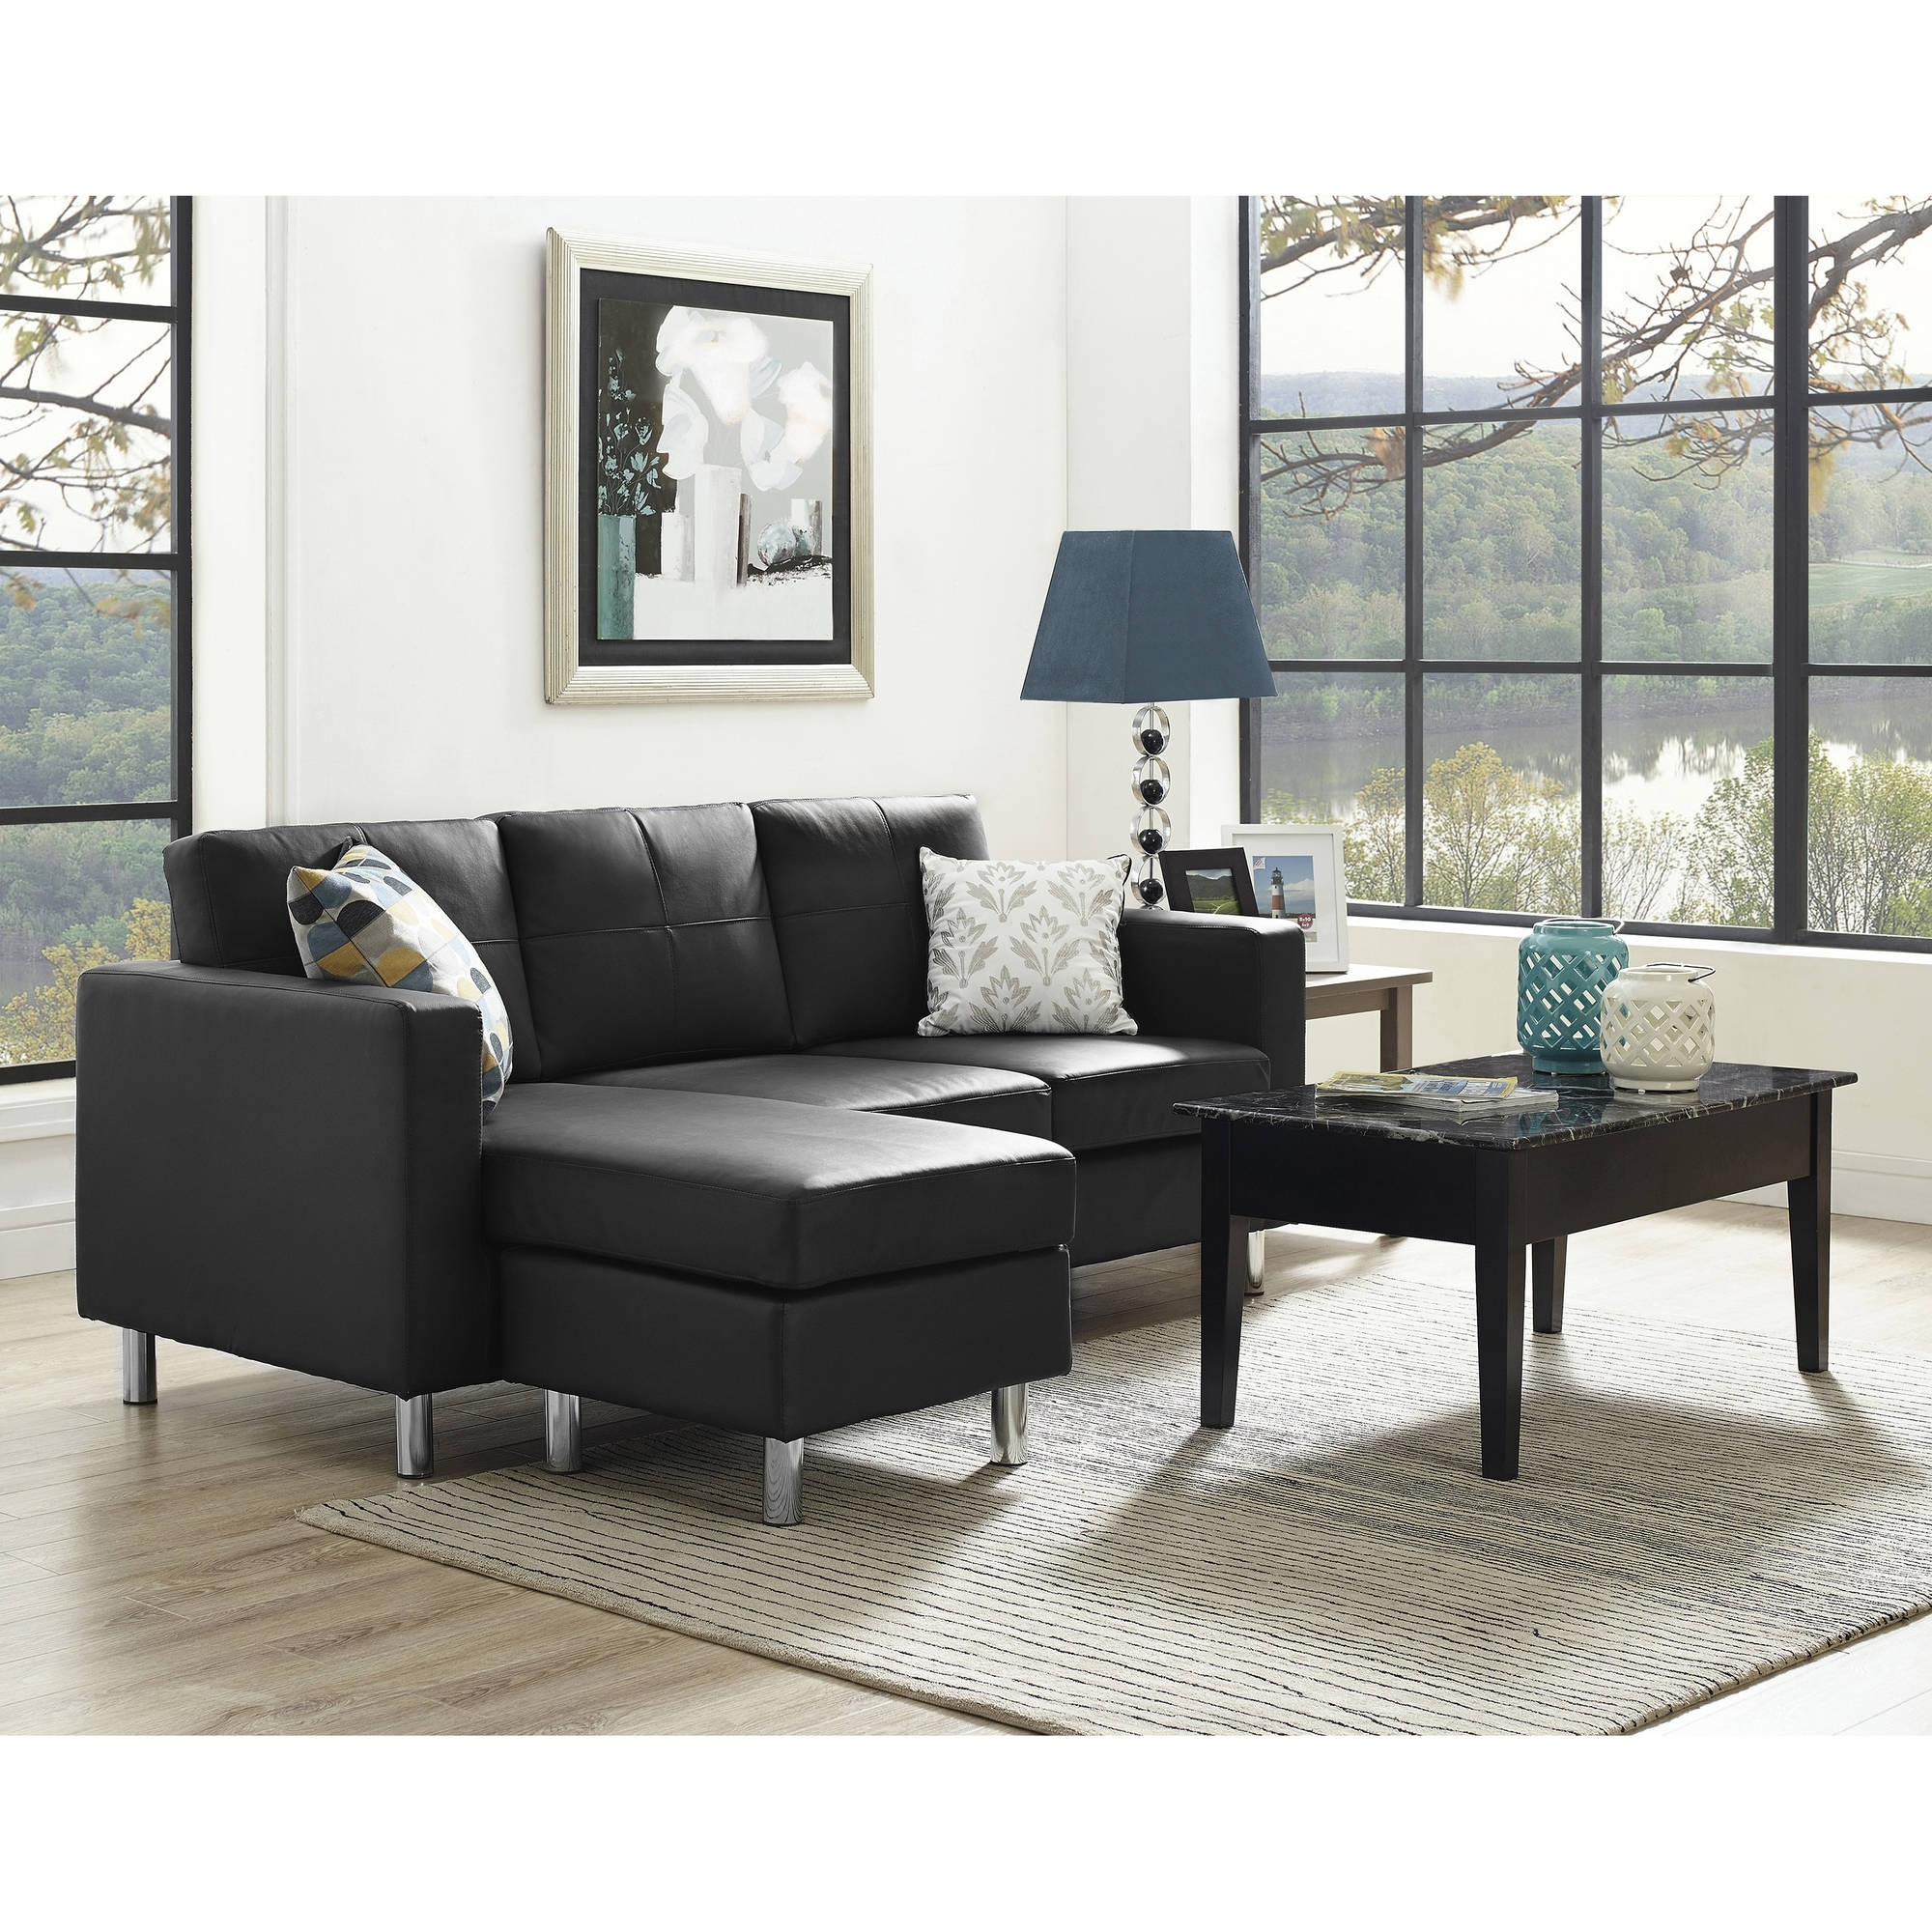 Dorel Living Small Spaces Configurable Sectional Sofa, Multiple Inside Sectional Sofas For Small Places (Image 7 of 10)